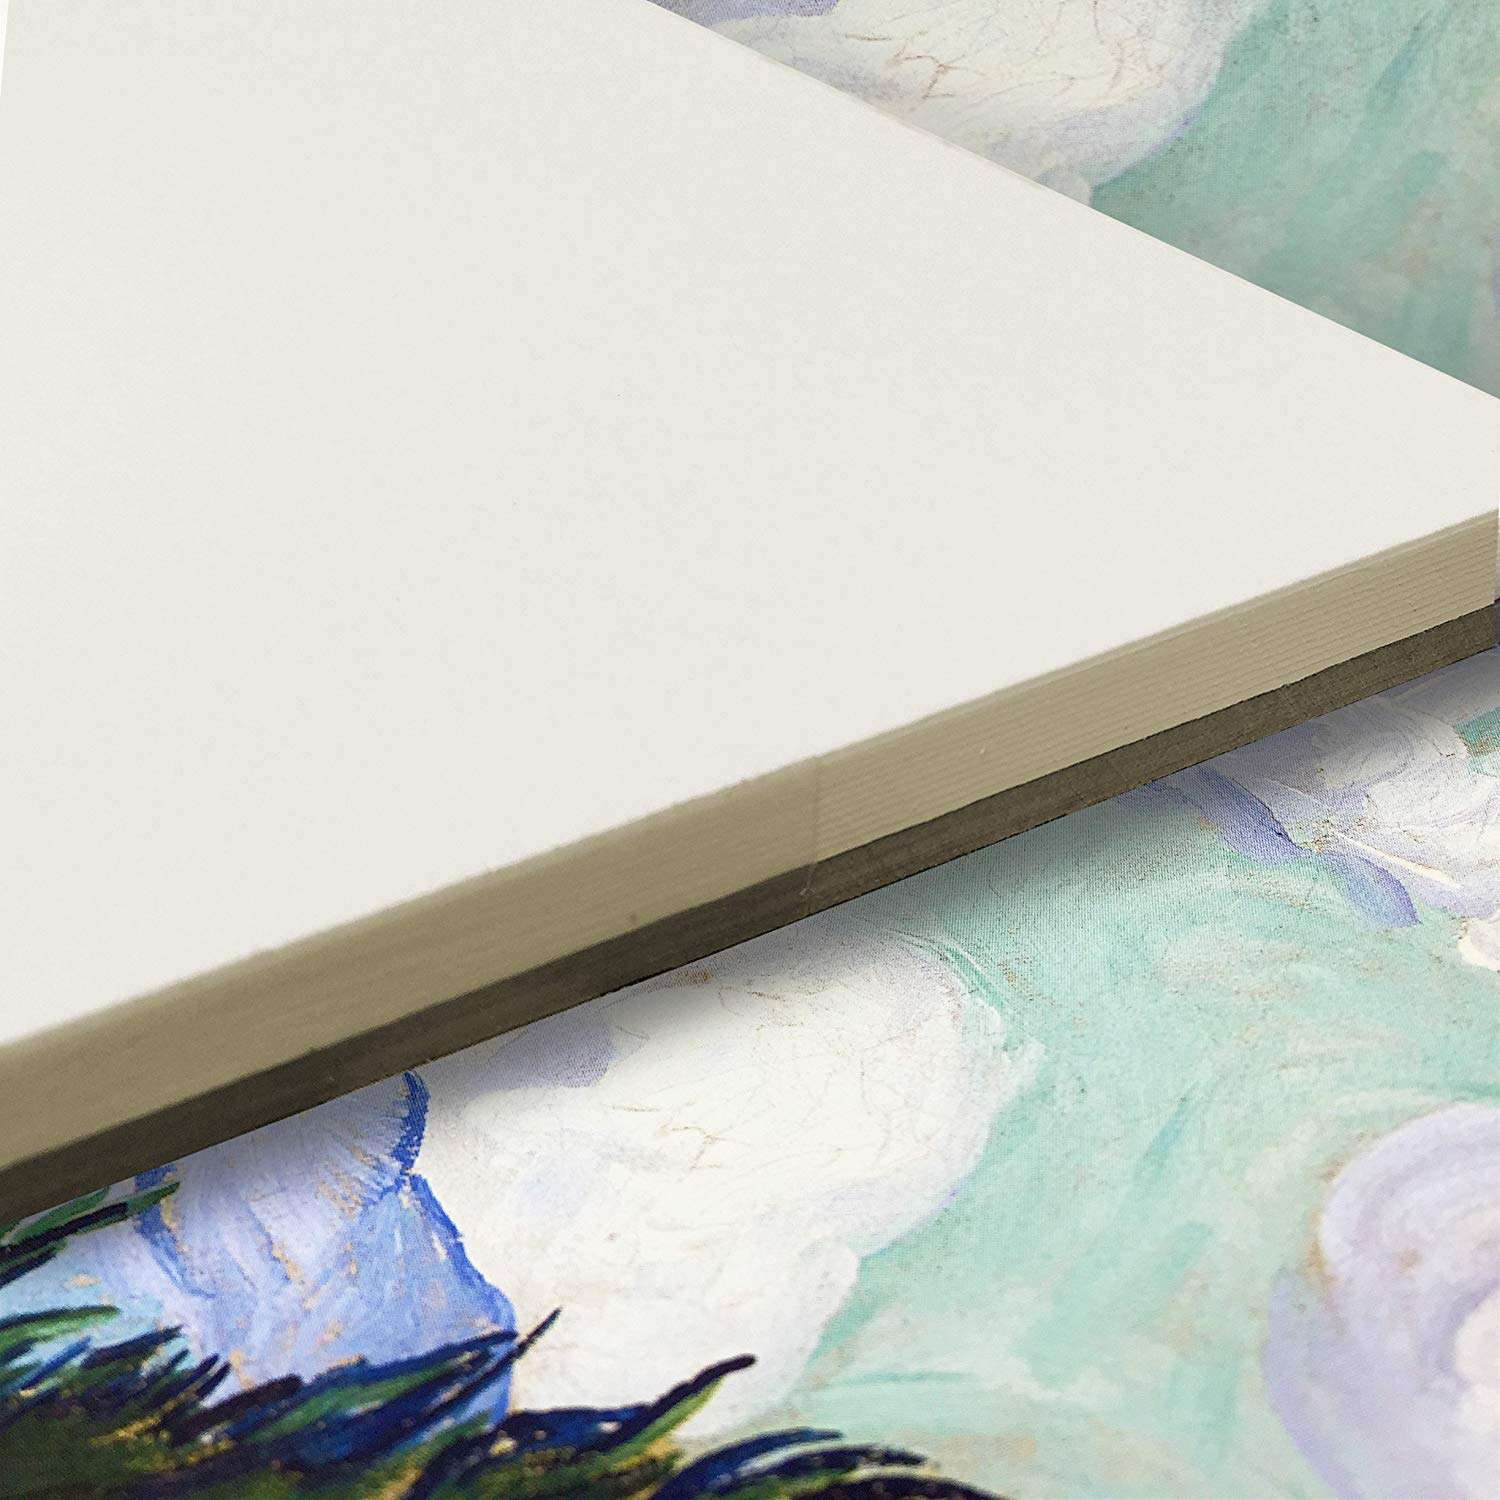 Watercolor Paper: What You Need to Know